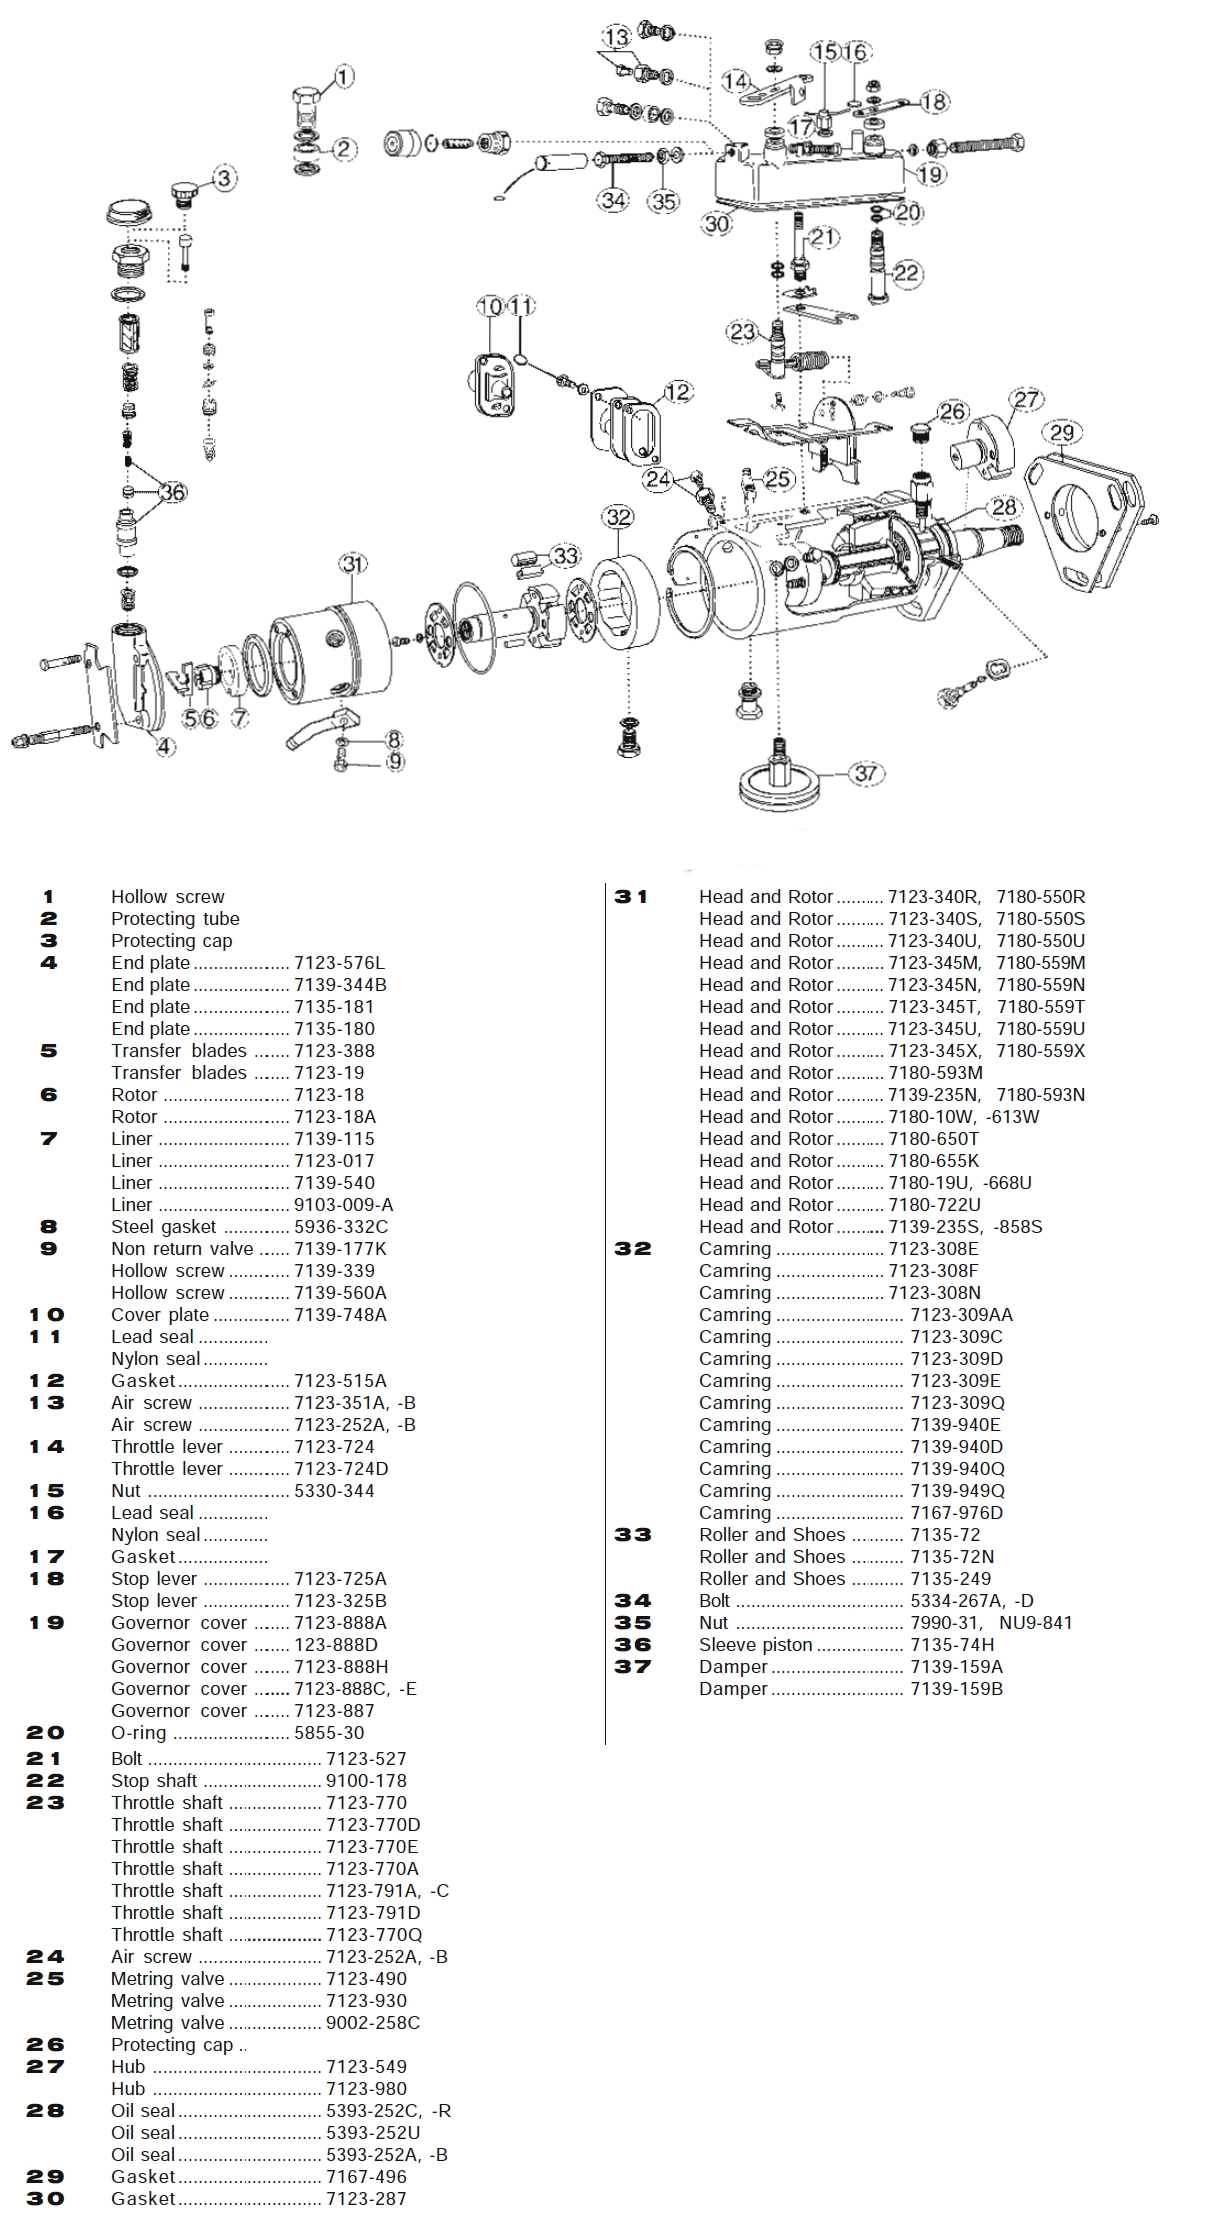 Lucas CAV DPA Fuel Injection Pump Exploded Parts DiagramStationary Engine Parts